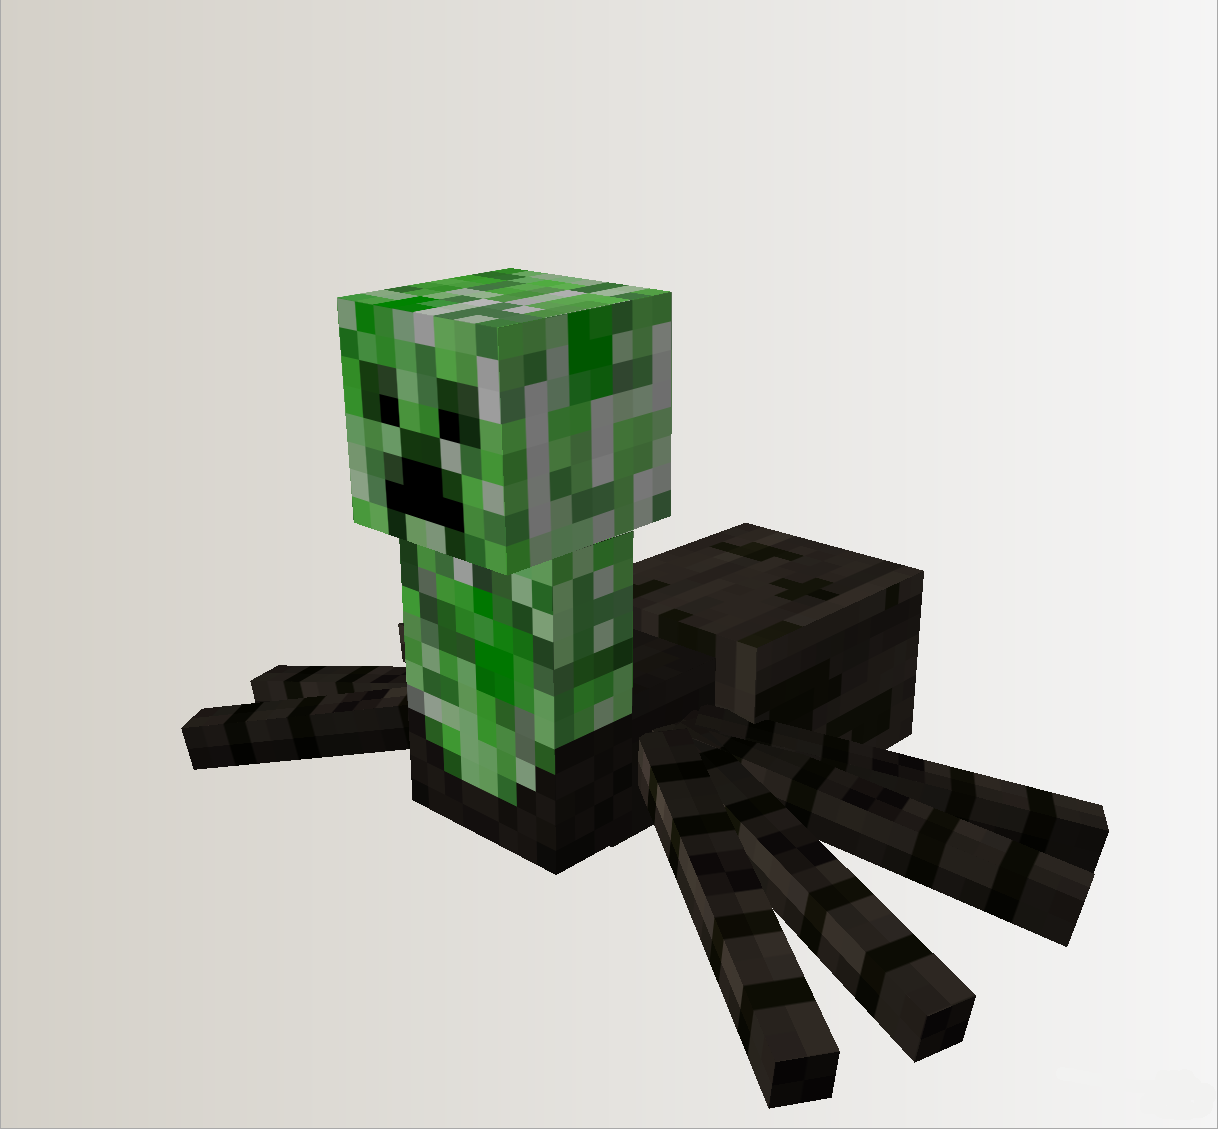 Creeper-Spider Mod - Mods - Minecraft - CurseForge